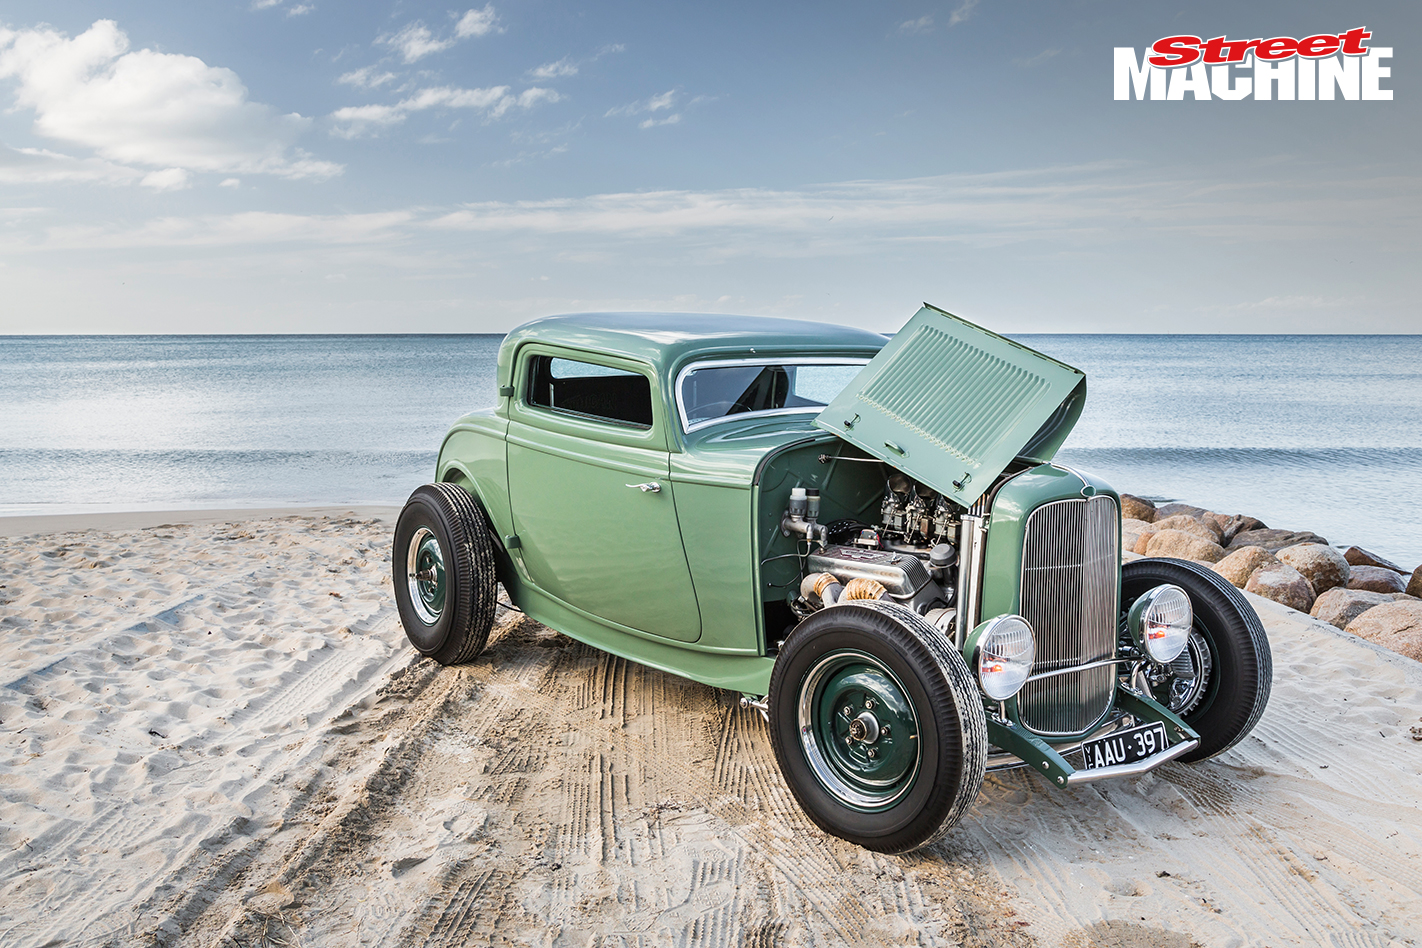 STREET MACHINE HOT ROD 16 ON SALE NOW | Street Machine